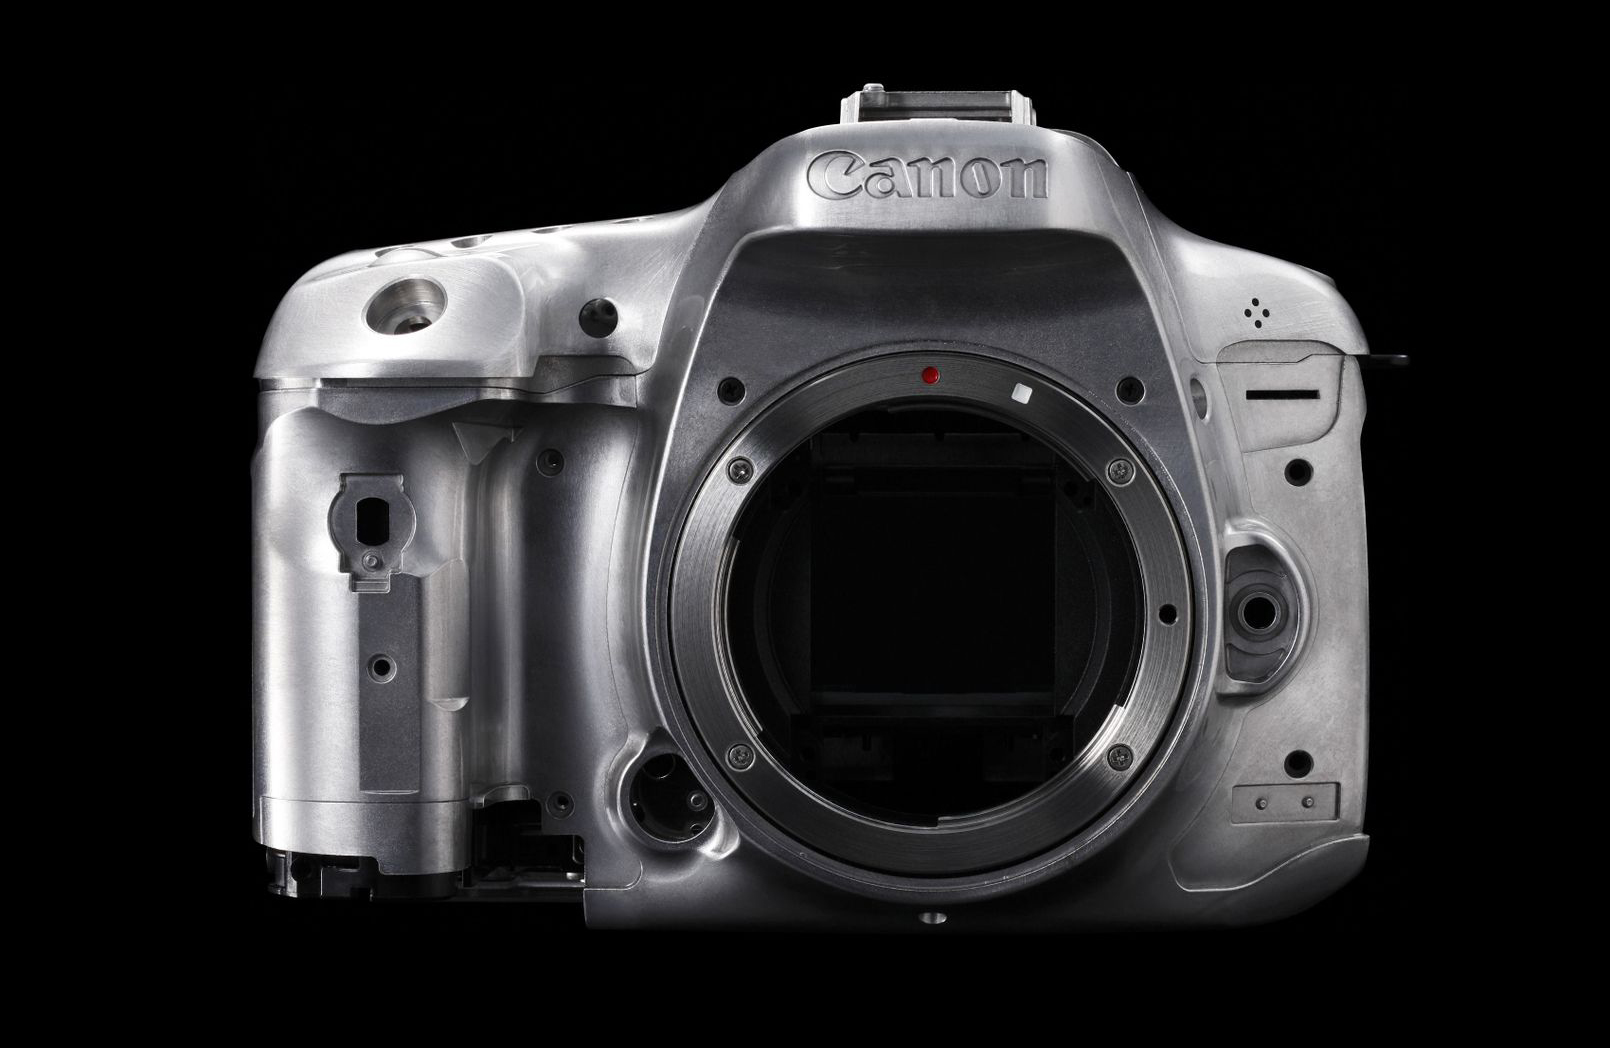 Canon 32MP camera to merge EOS 80D and 7D lines? UPDATE: specs revealed | Digital Camera World